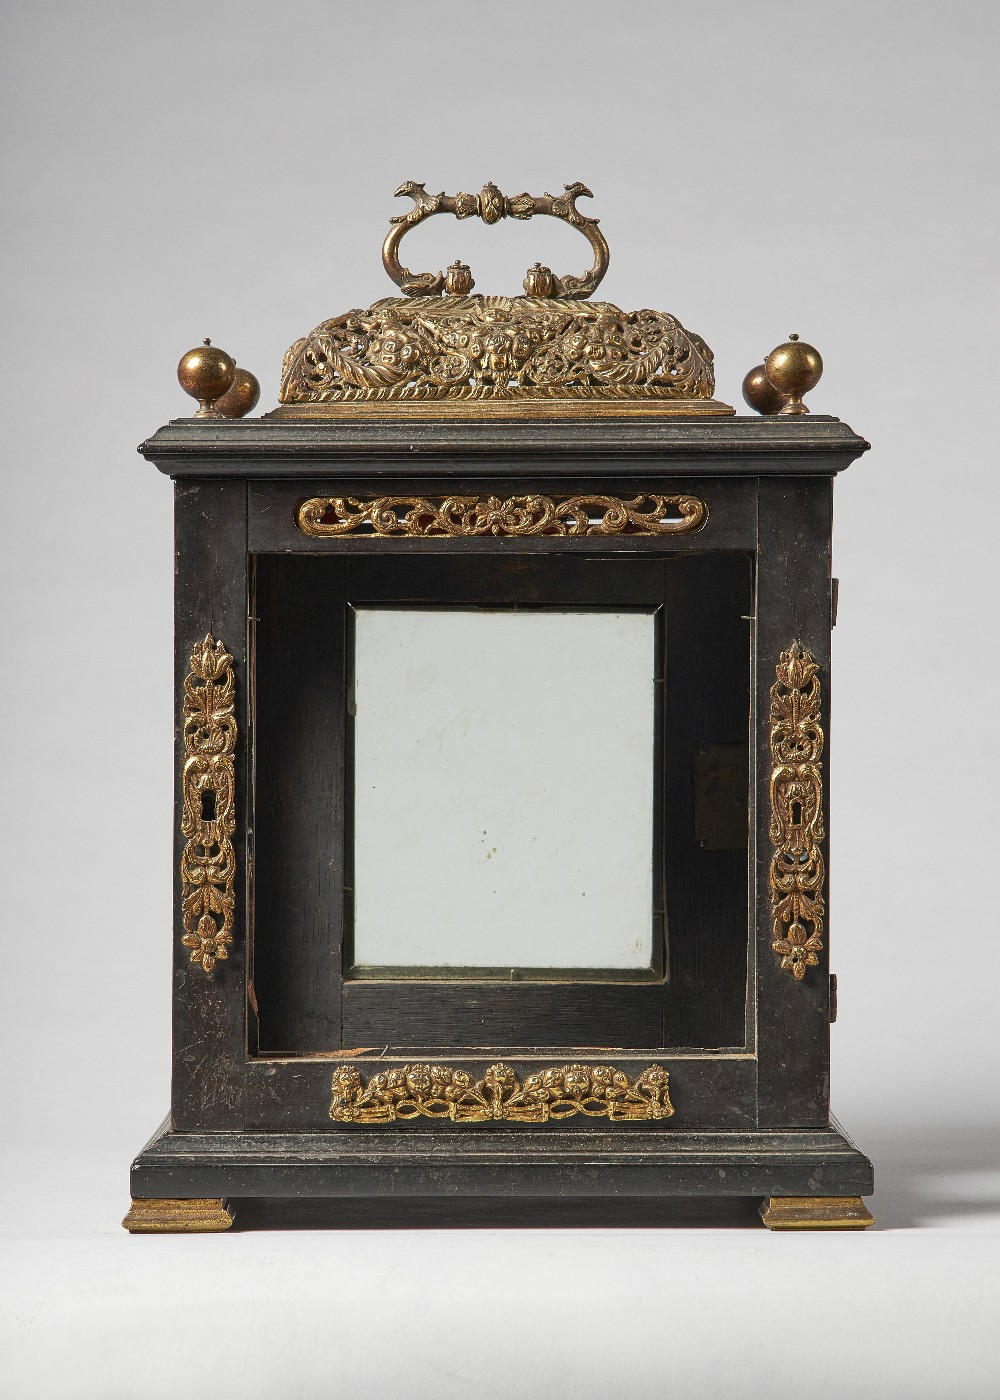 Lot 671 - A giltmetal-mounted ebonised table clock case Late 17th century With pierced basket and four